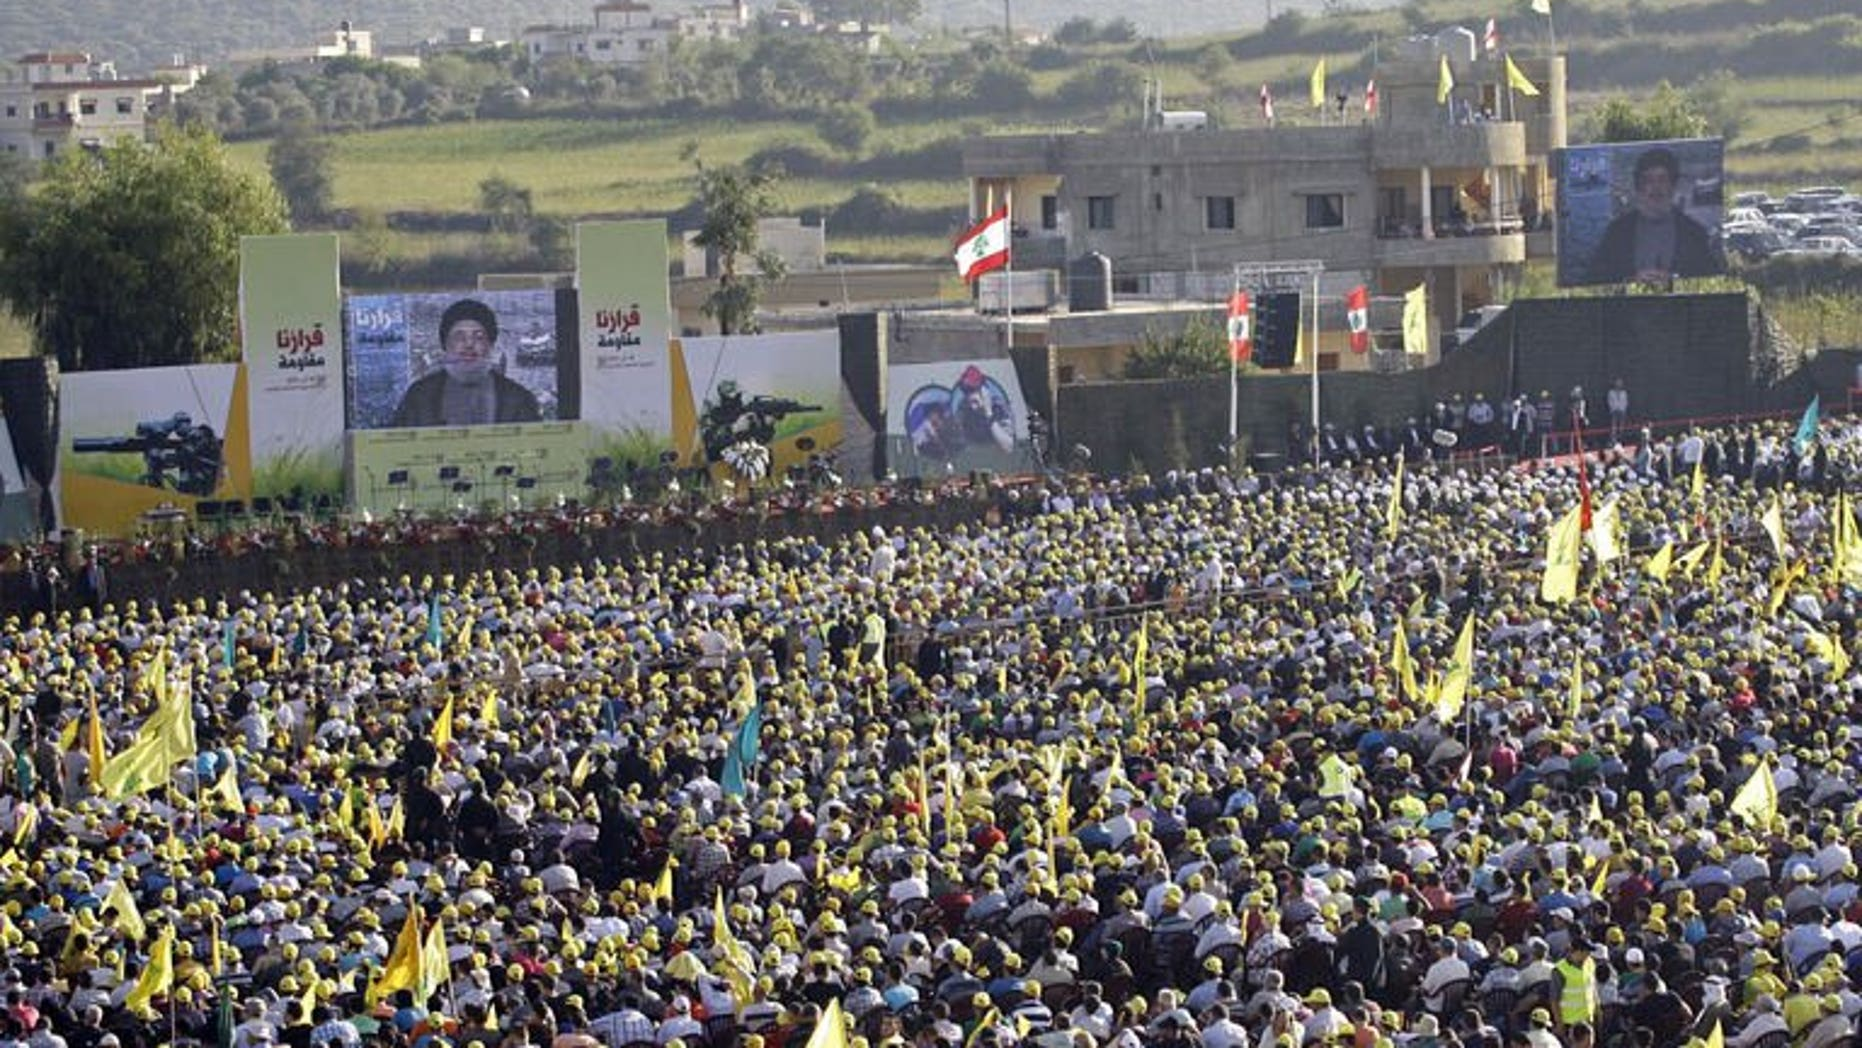 Lebanese supporters of the Shiite Hezbollah movement listen to Hezbollah's leader Hasan Nasrallah delivering a televised speech as they gather in the southern Lebanese village of Aita al-Shaab, on the border with Israel on August 16, 2013 to commemorate the seventh anniversary of the 2006 July-August war between Lebanon and Israel.